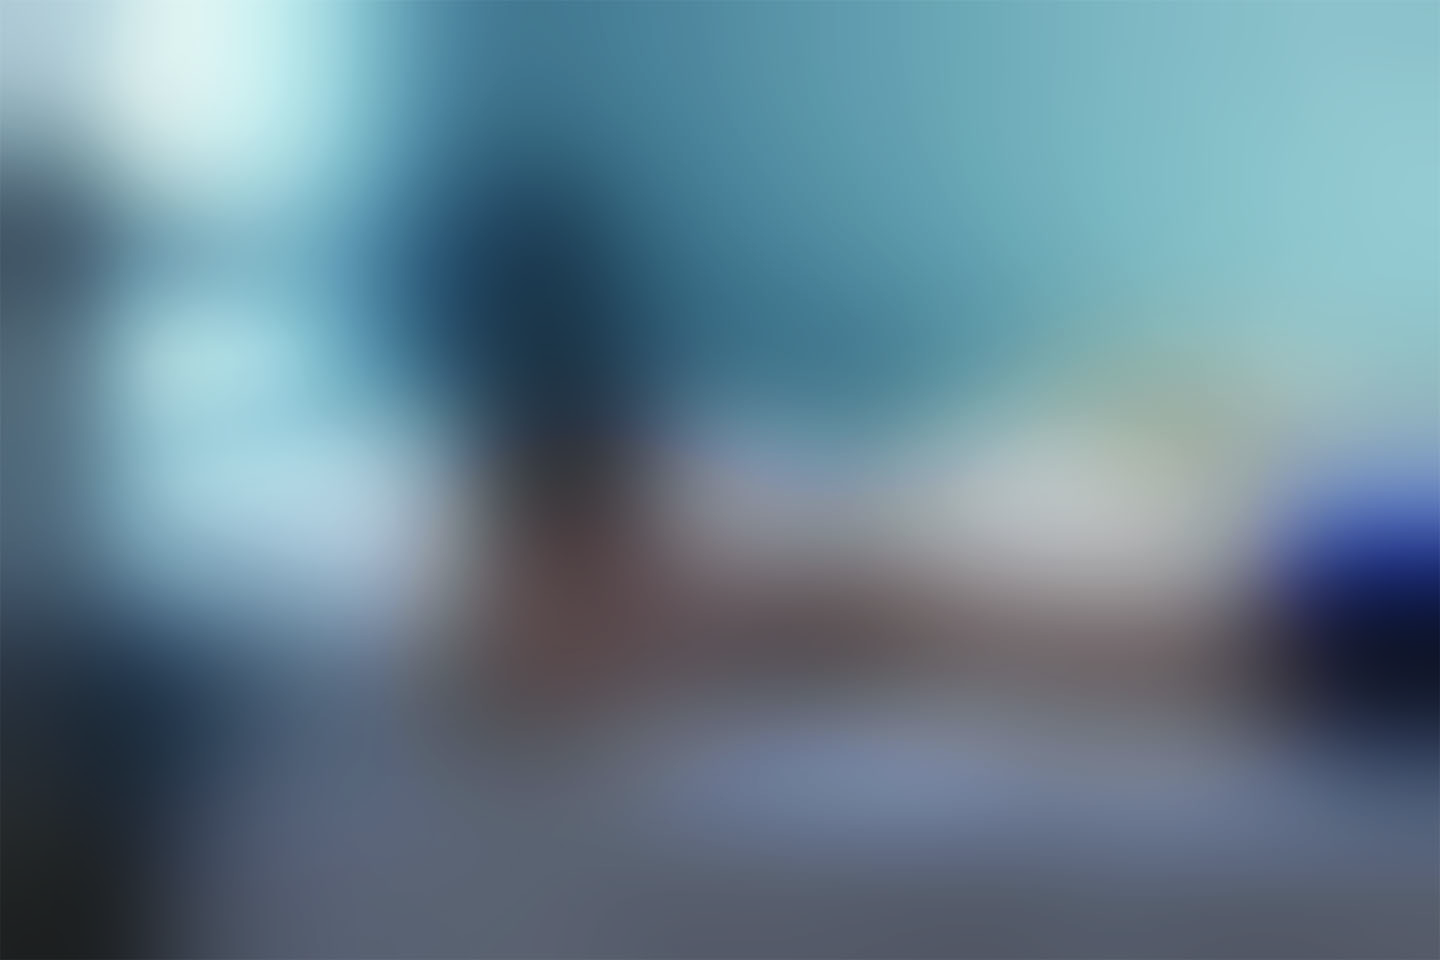 Transition _ Transformation, Untitled, 2020 Digital Photograph 40 x 60 in